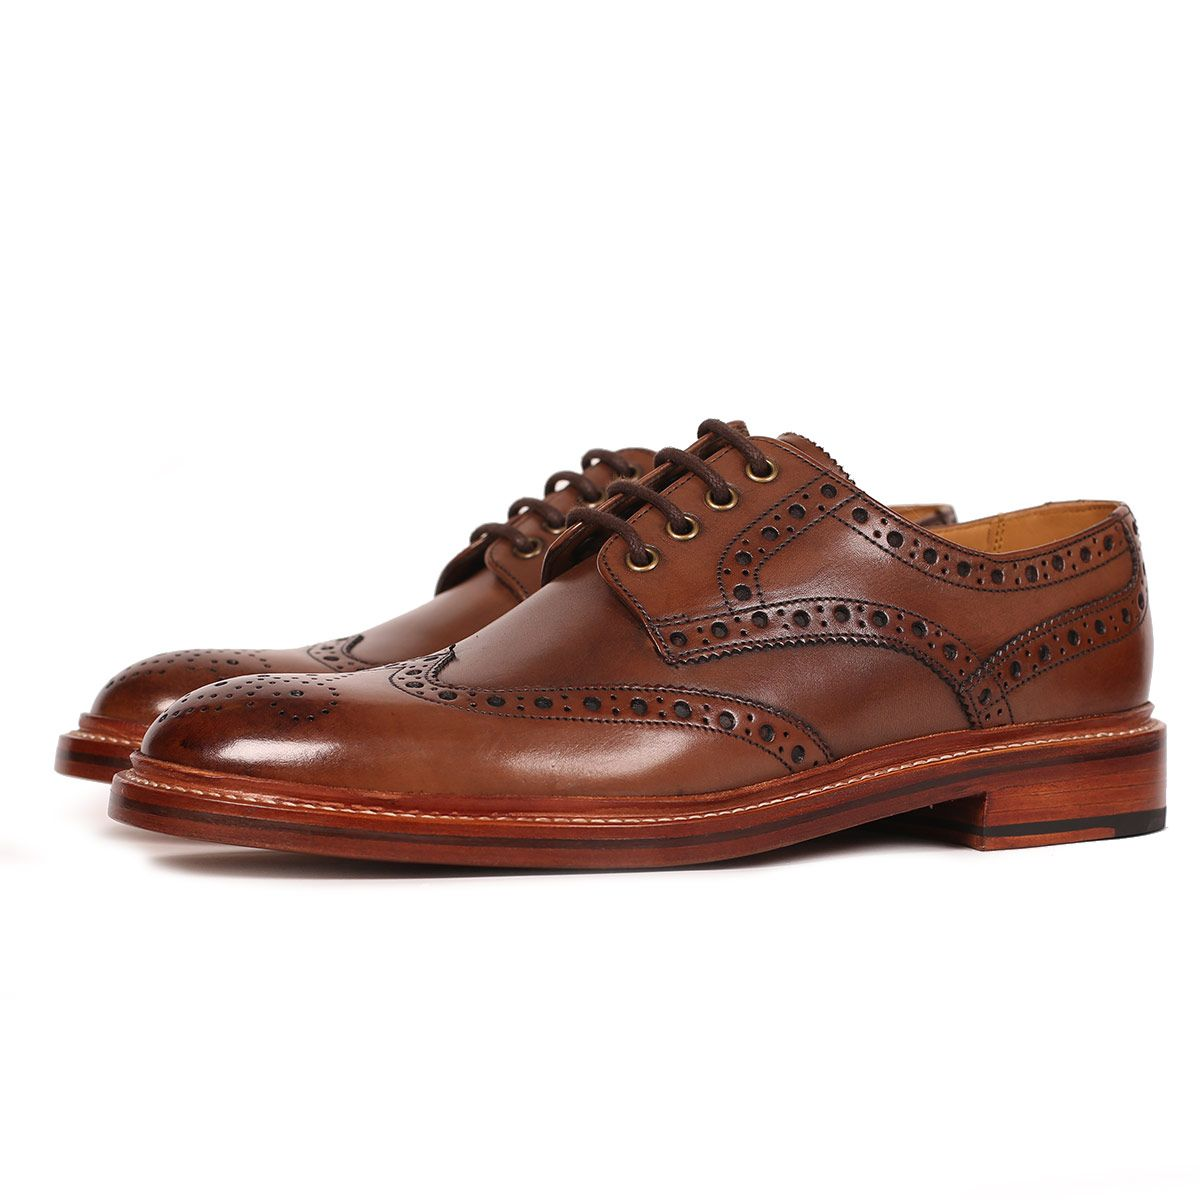 Oliver Sweeney Saunders Dark Tan - Calf Leather Derby Brogue